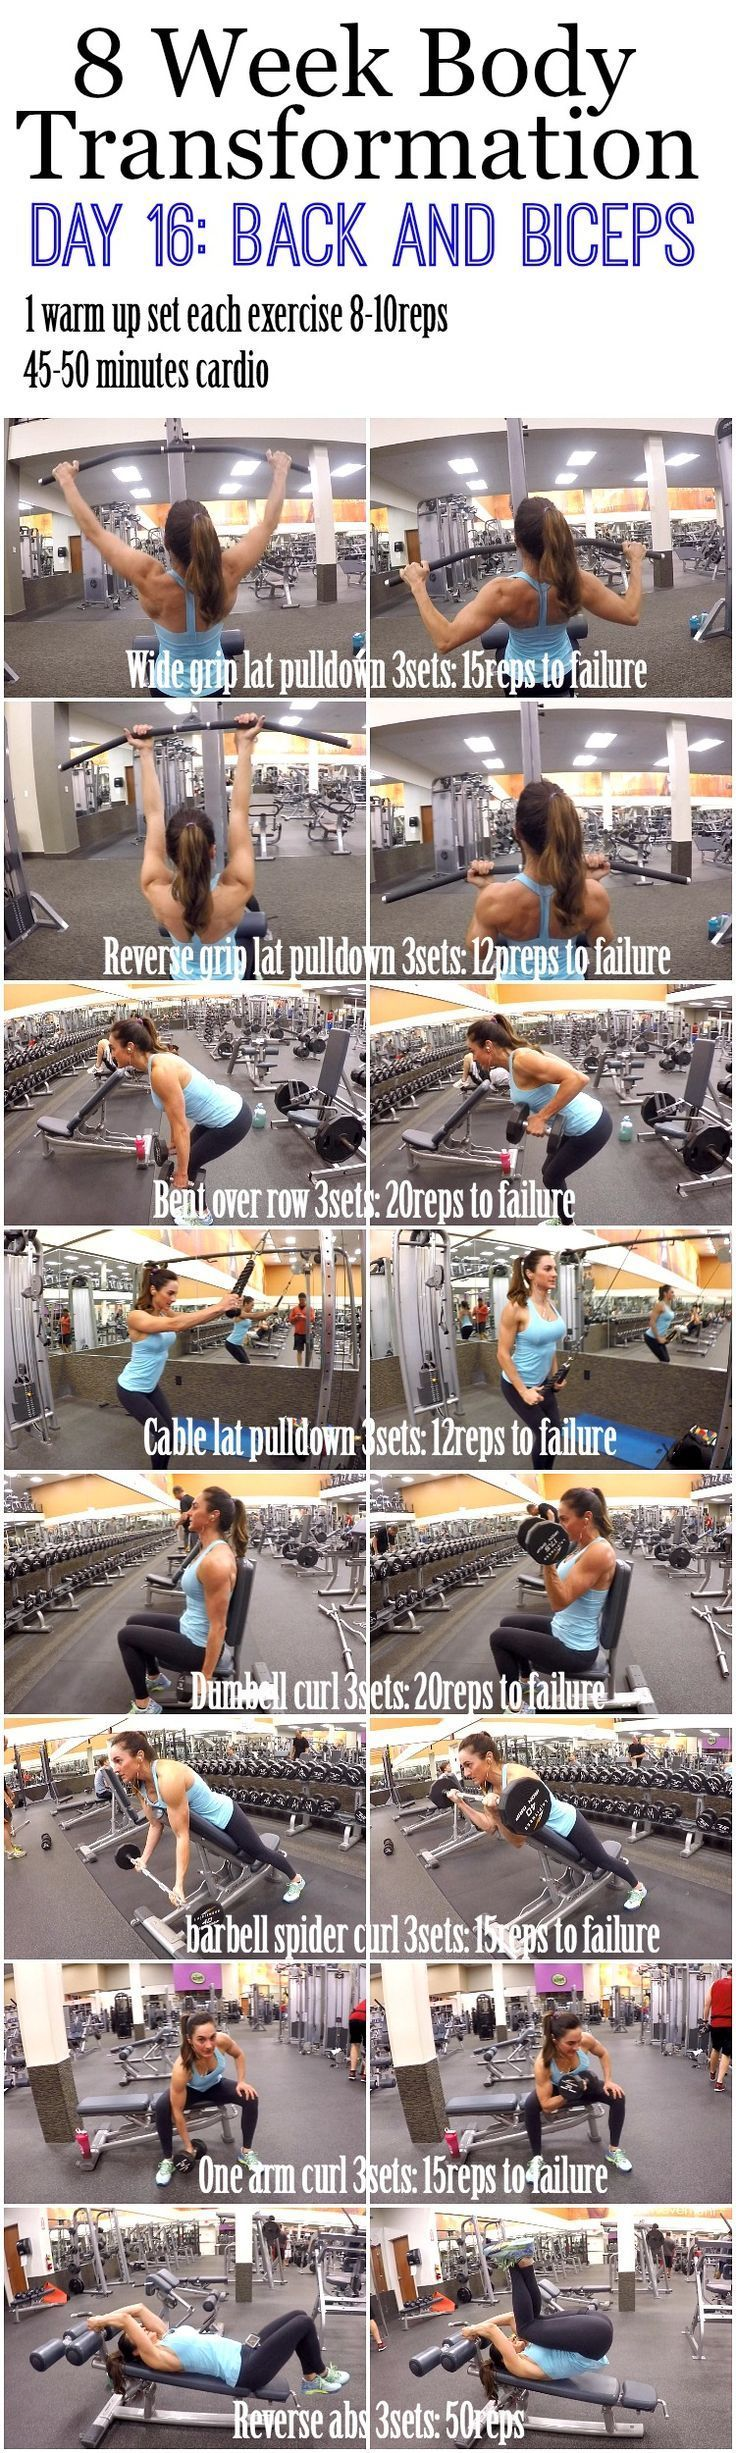 Build bigger biceps with this one trick cool 8 Week Body Transformation: Day 16 Back and Biceps - Fitness Food Diva